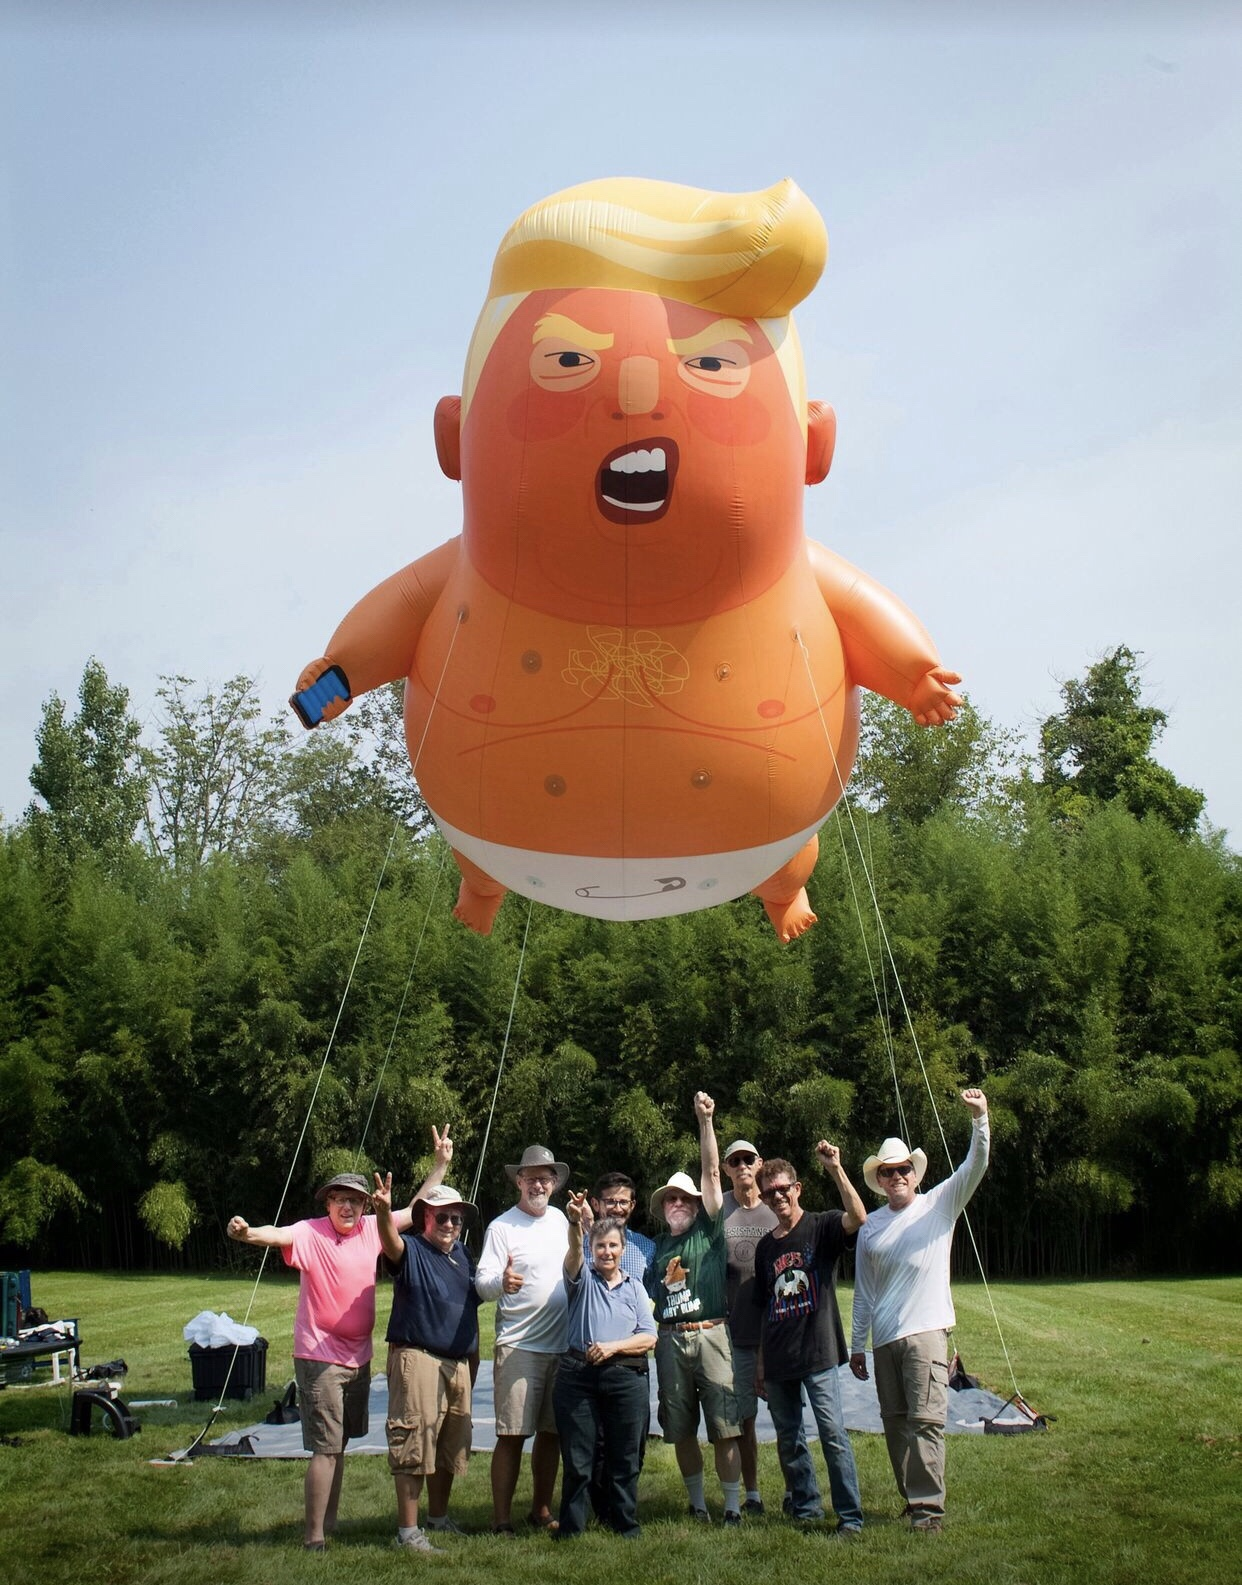 Trump Balloons Coming to N.J.!